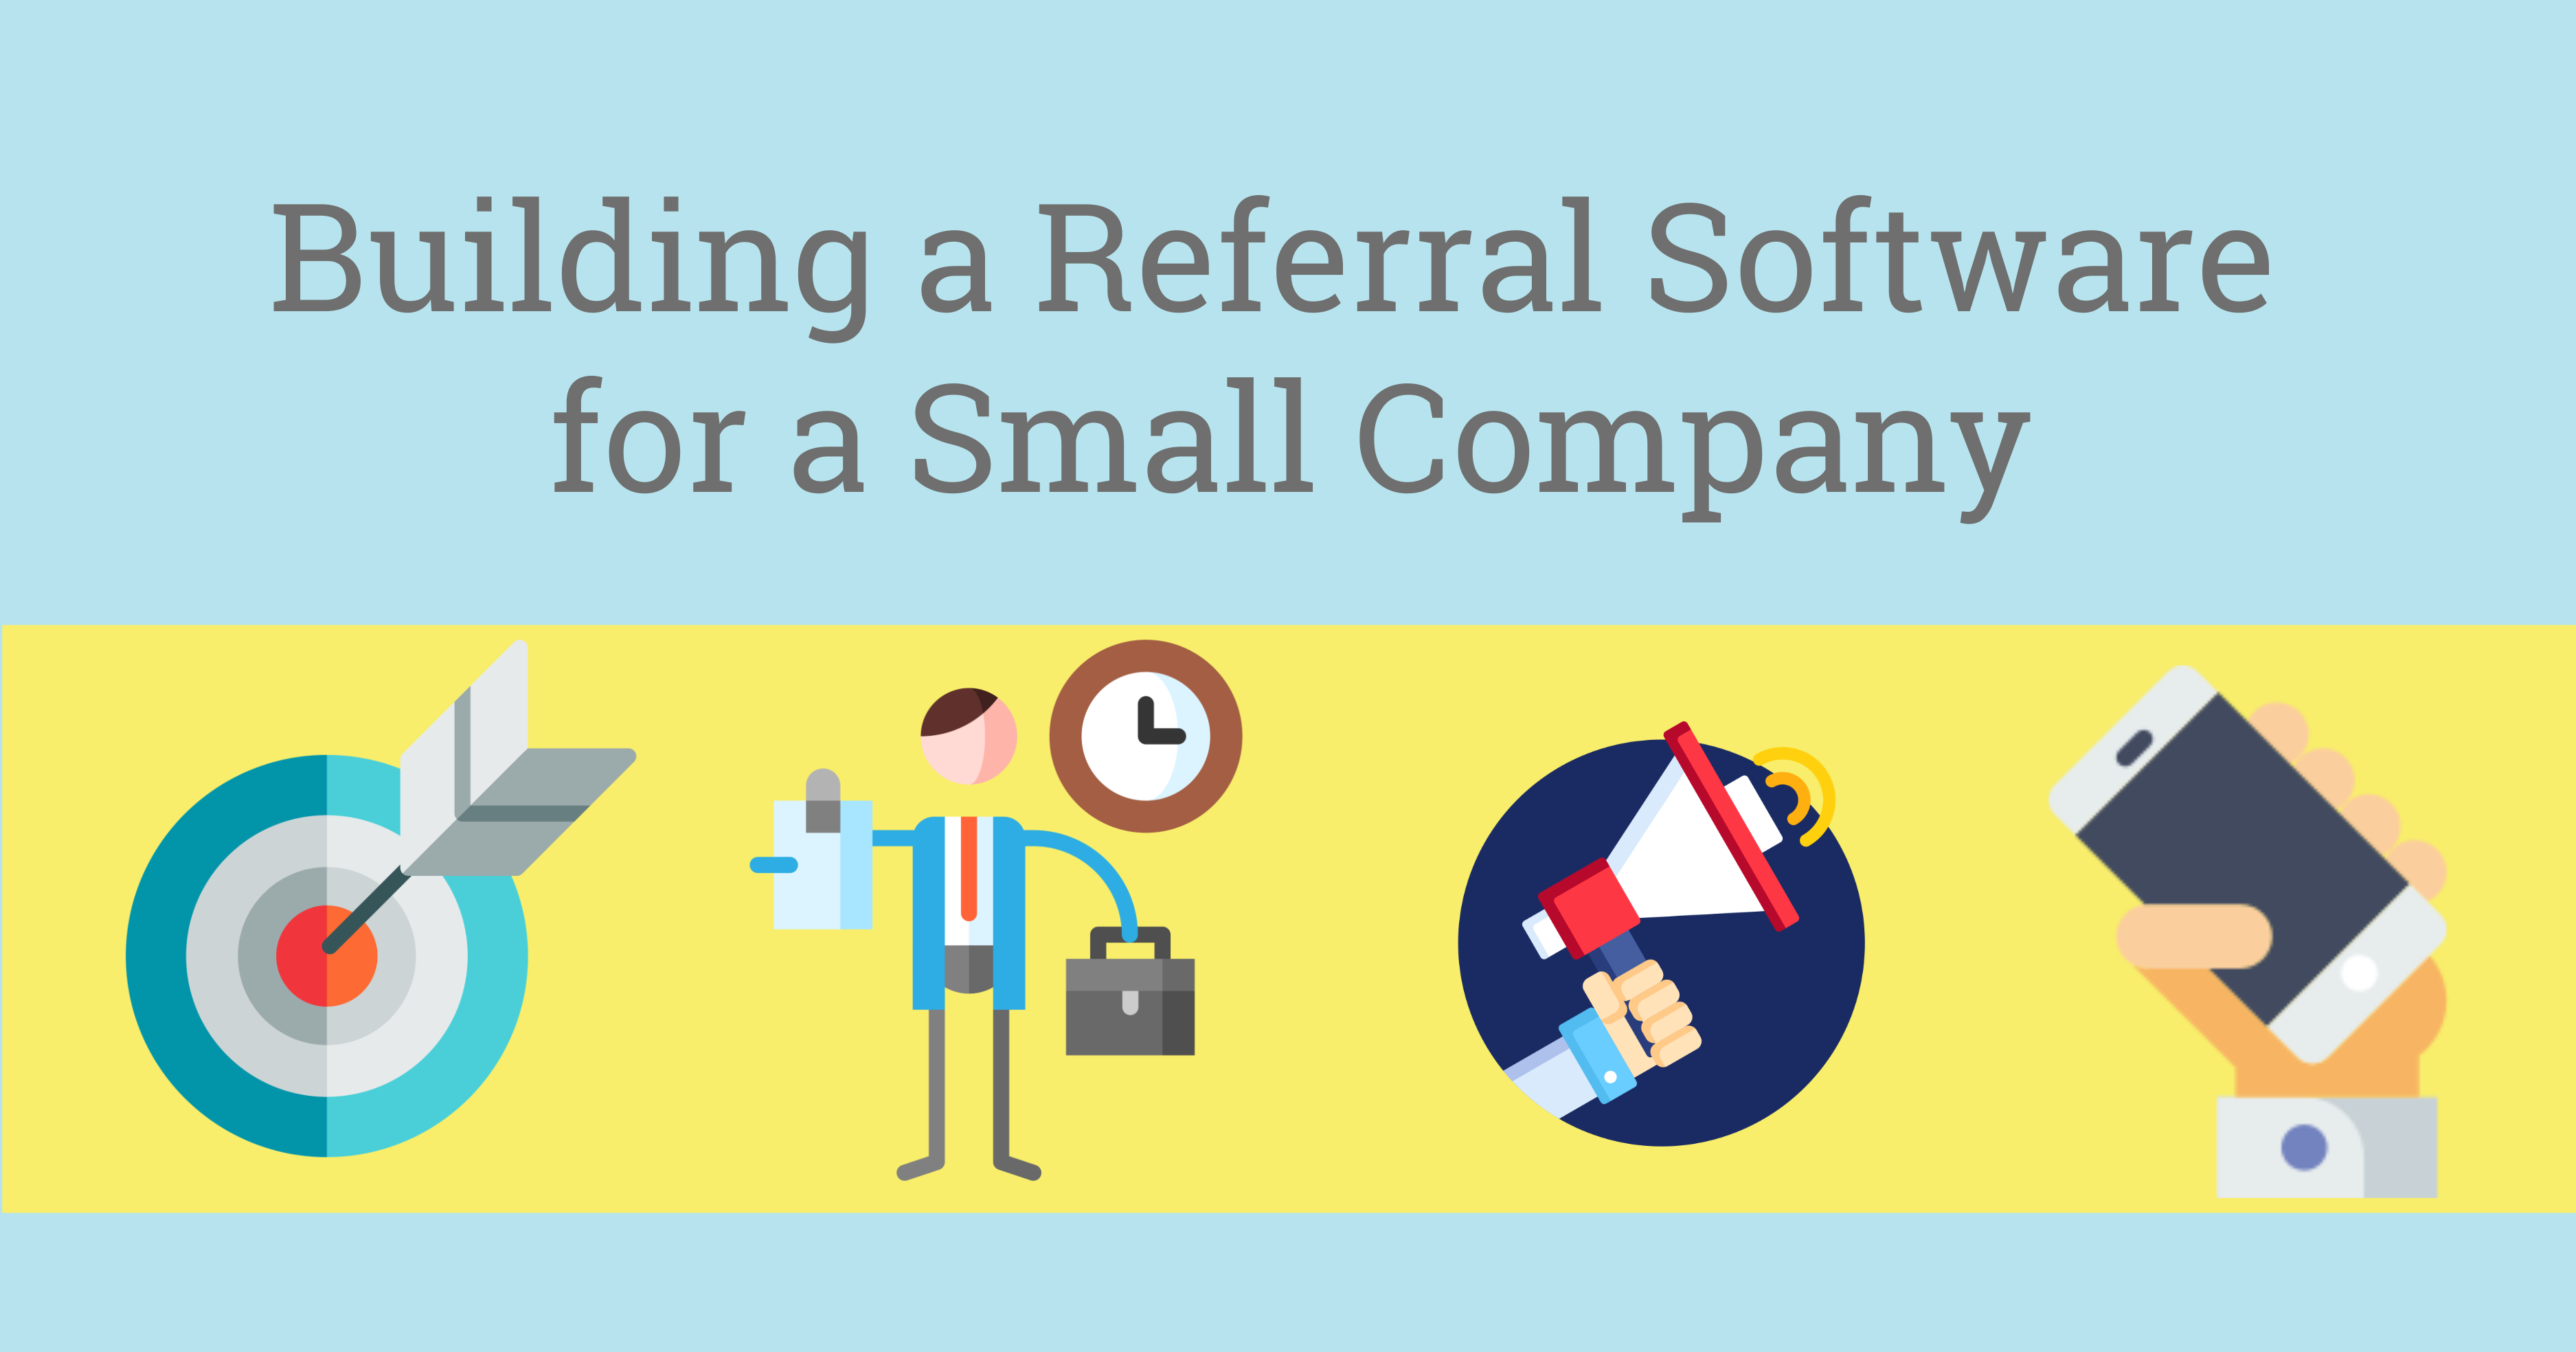 Long_Building a Referral Software for Small Company